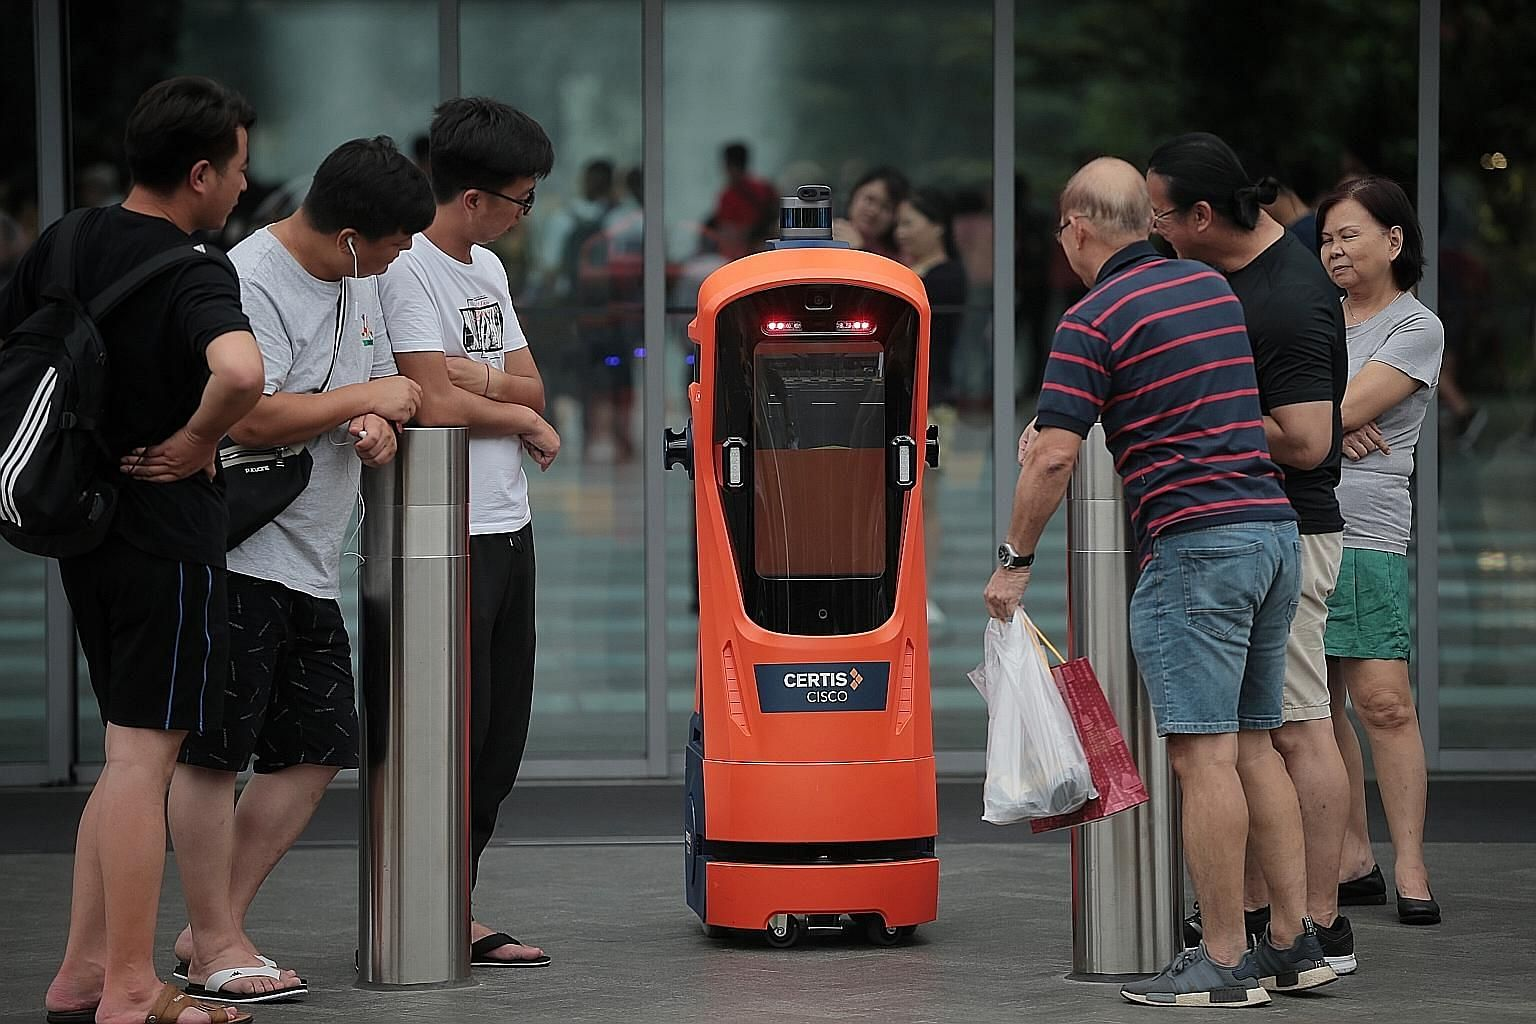 A Certis robot attracting the attention of curious visitors at Jewel Changi Airport yesterday. The robot traffic cop, which is on trial, conducts patrols but does not issue summonses.